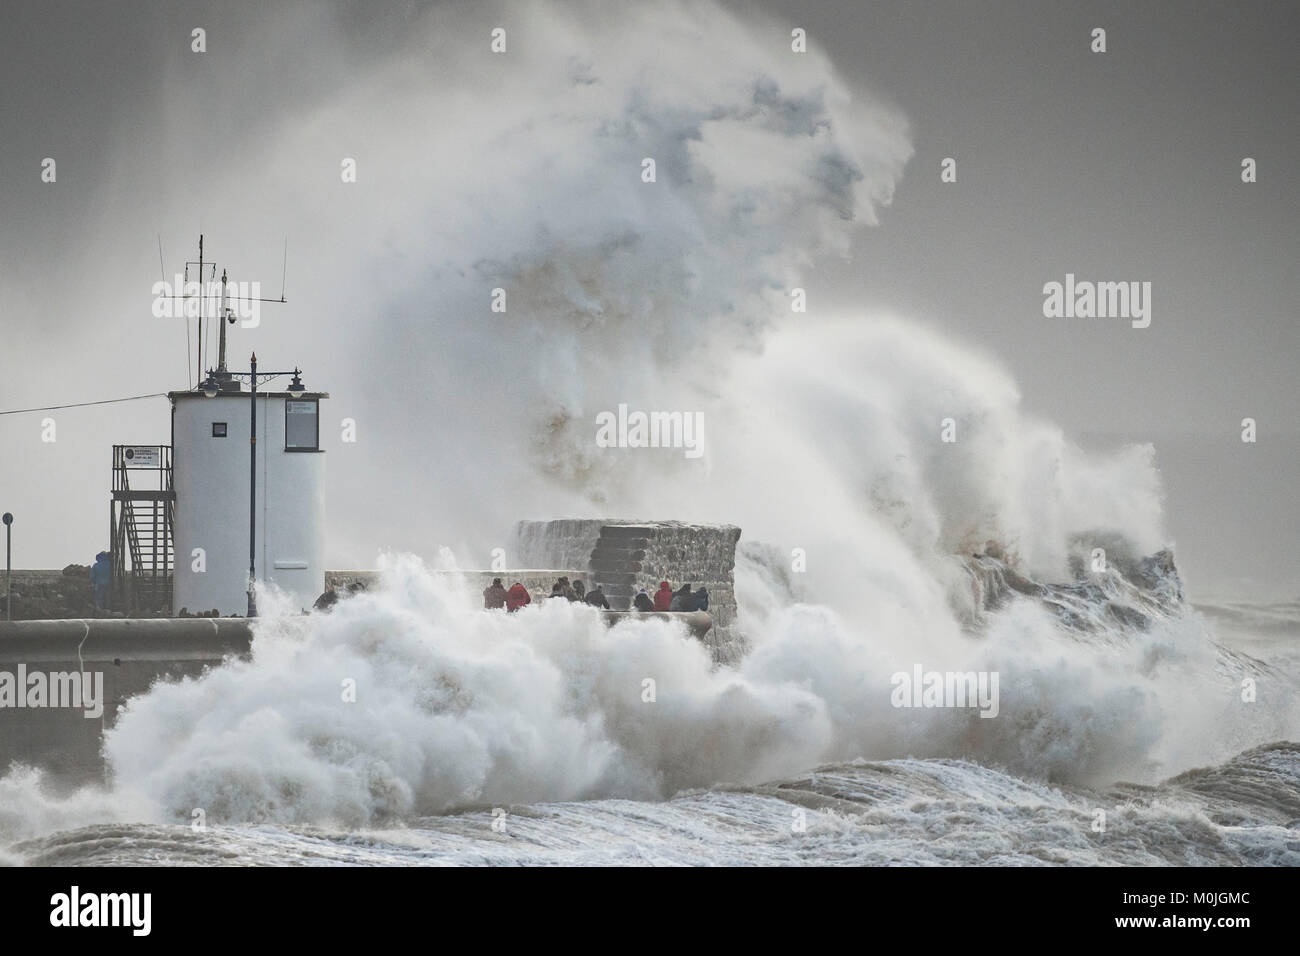 Waves crash against the harbour wall at Porthawl, South Wales, UK during storm Eleanor. The Met Office issued a weather warning for strong winds. Stock Photo